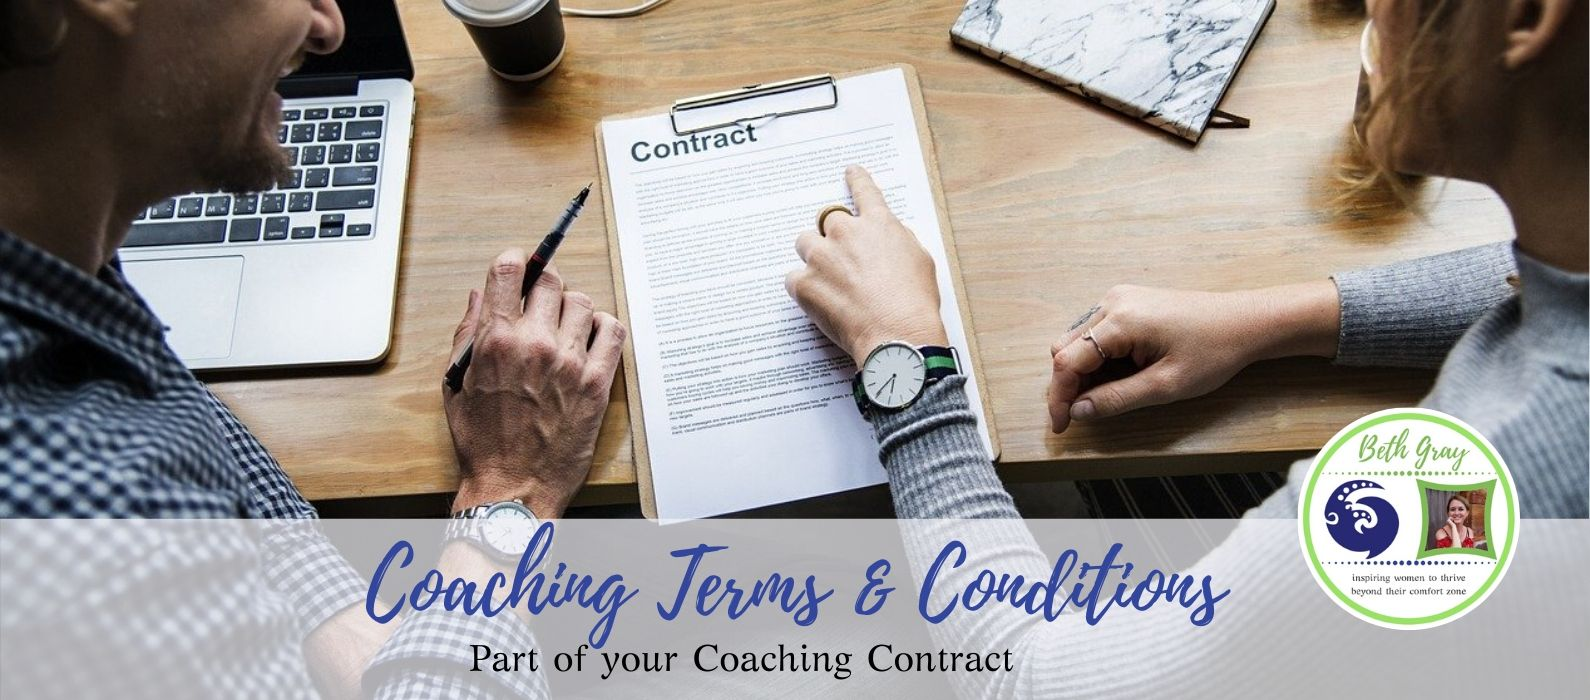 independent contractor, therapy, decisions, choices, actions and results, erms and conditions, coaching contract, confidentiality, non-disclosure, coaching agreement, coaching services, disclaimer, coaching relationships, counseling, psychotherapy, psychoanalysis, mental health care, substance abuse treatment, mental health professional, feedback, commitment